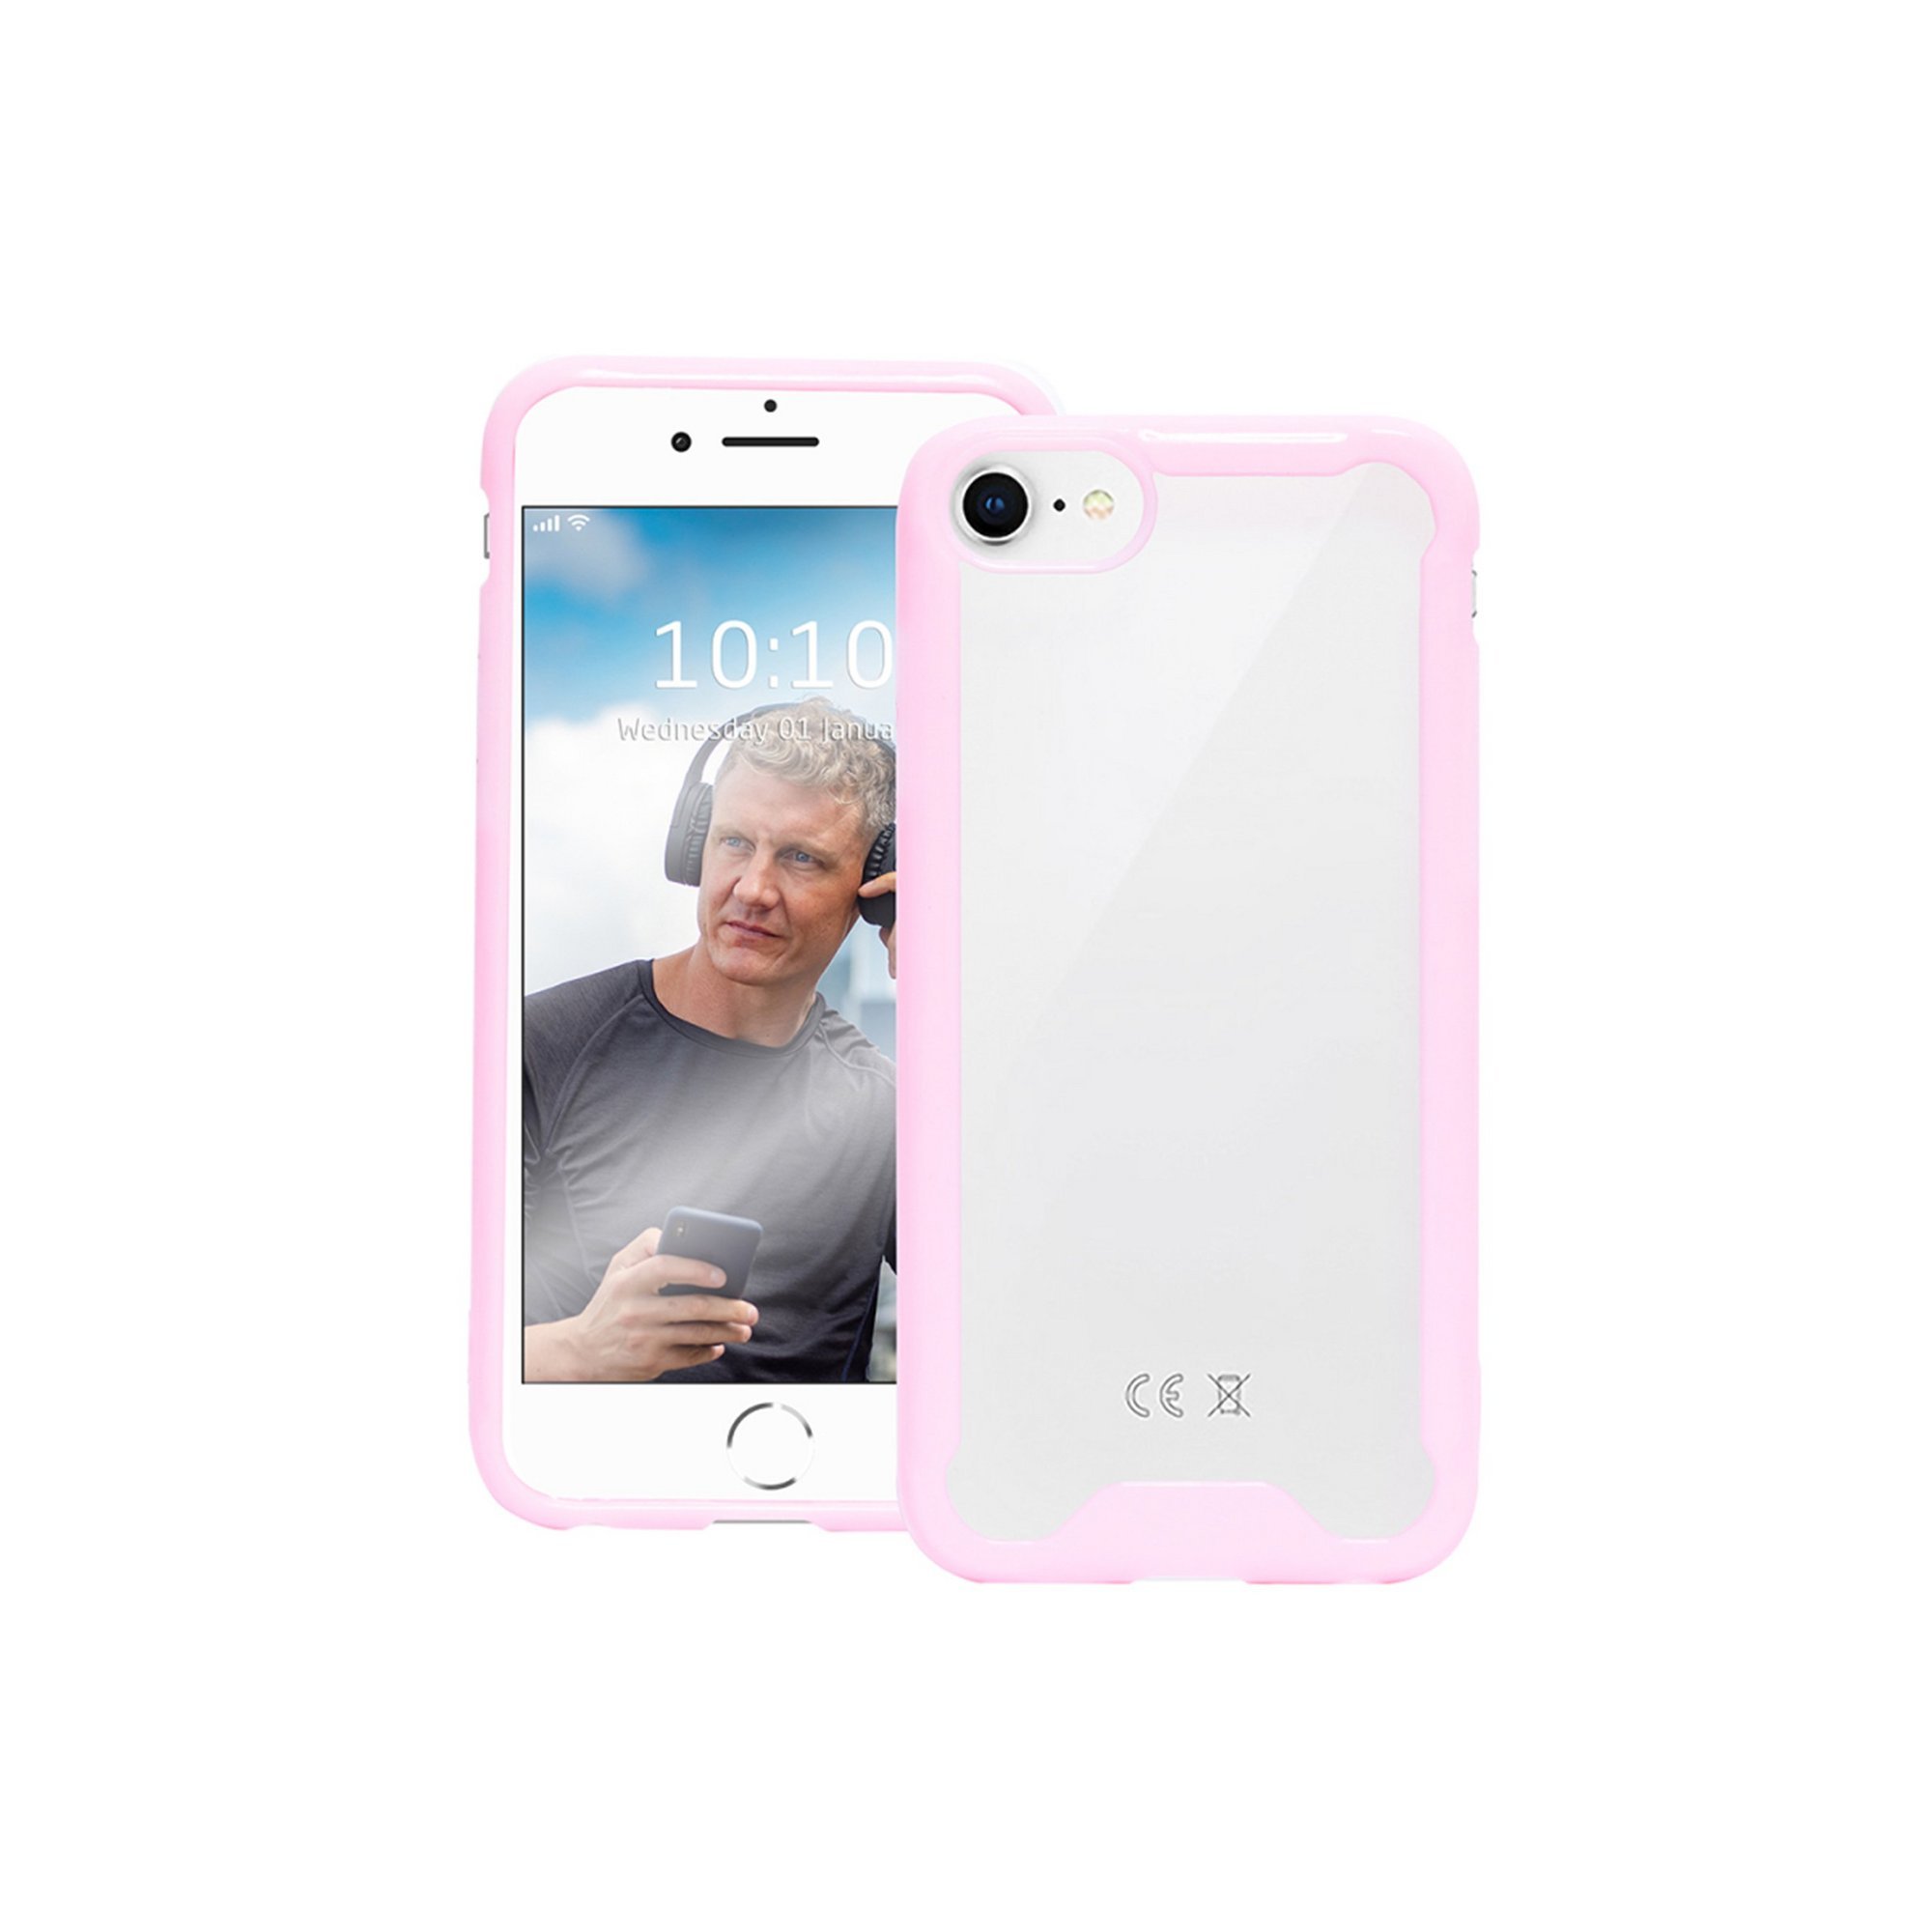 Image of Bumper Case for iPhone 6/7/8 - Clear/Pink